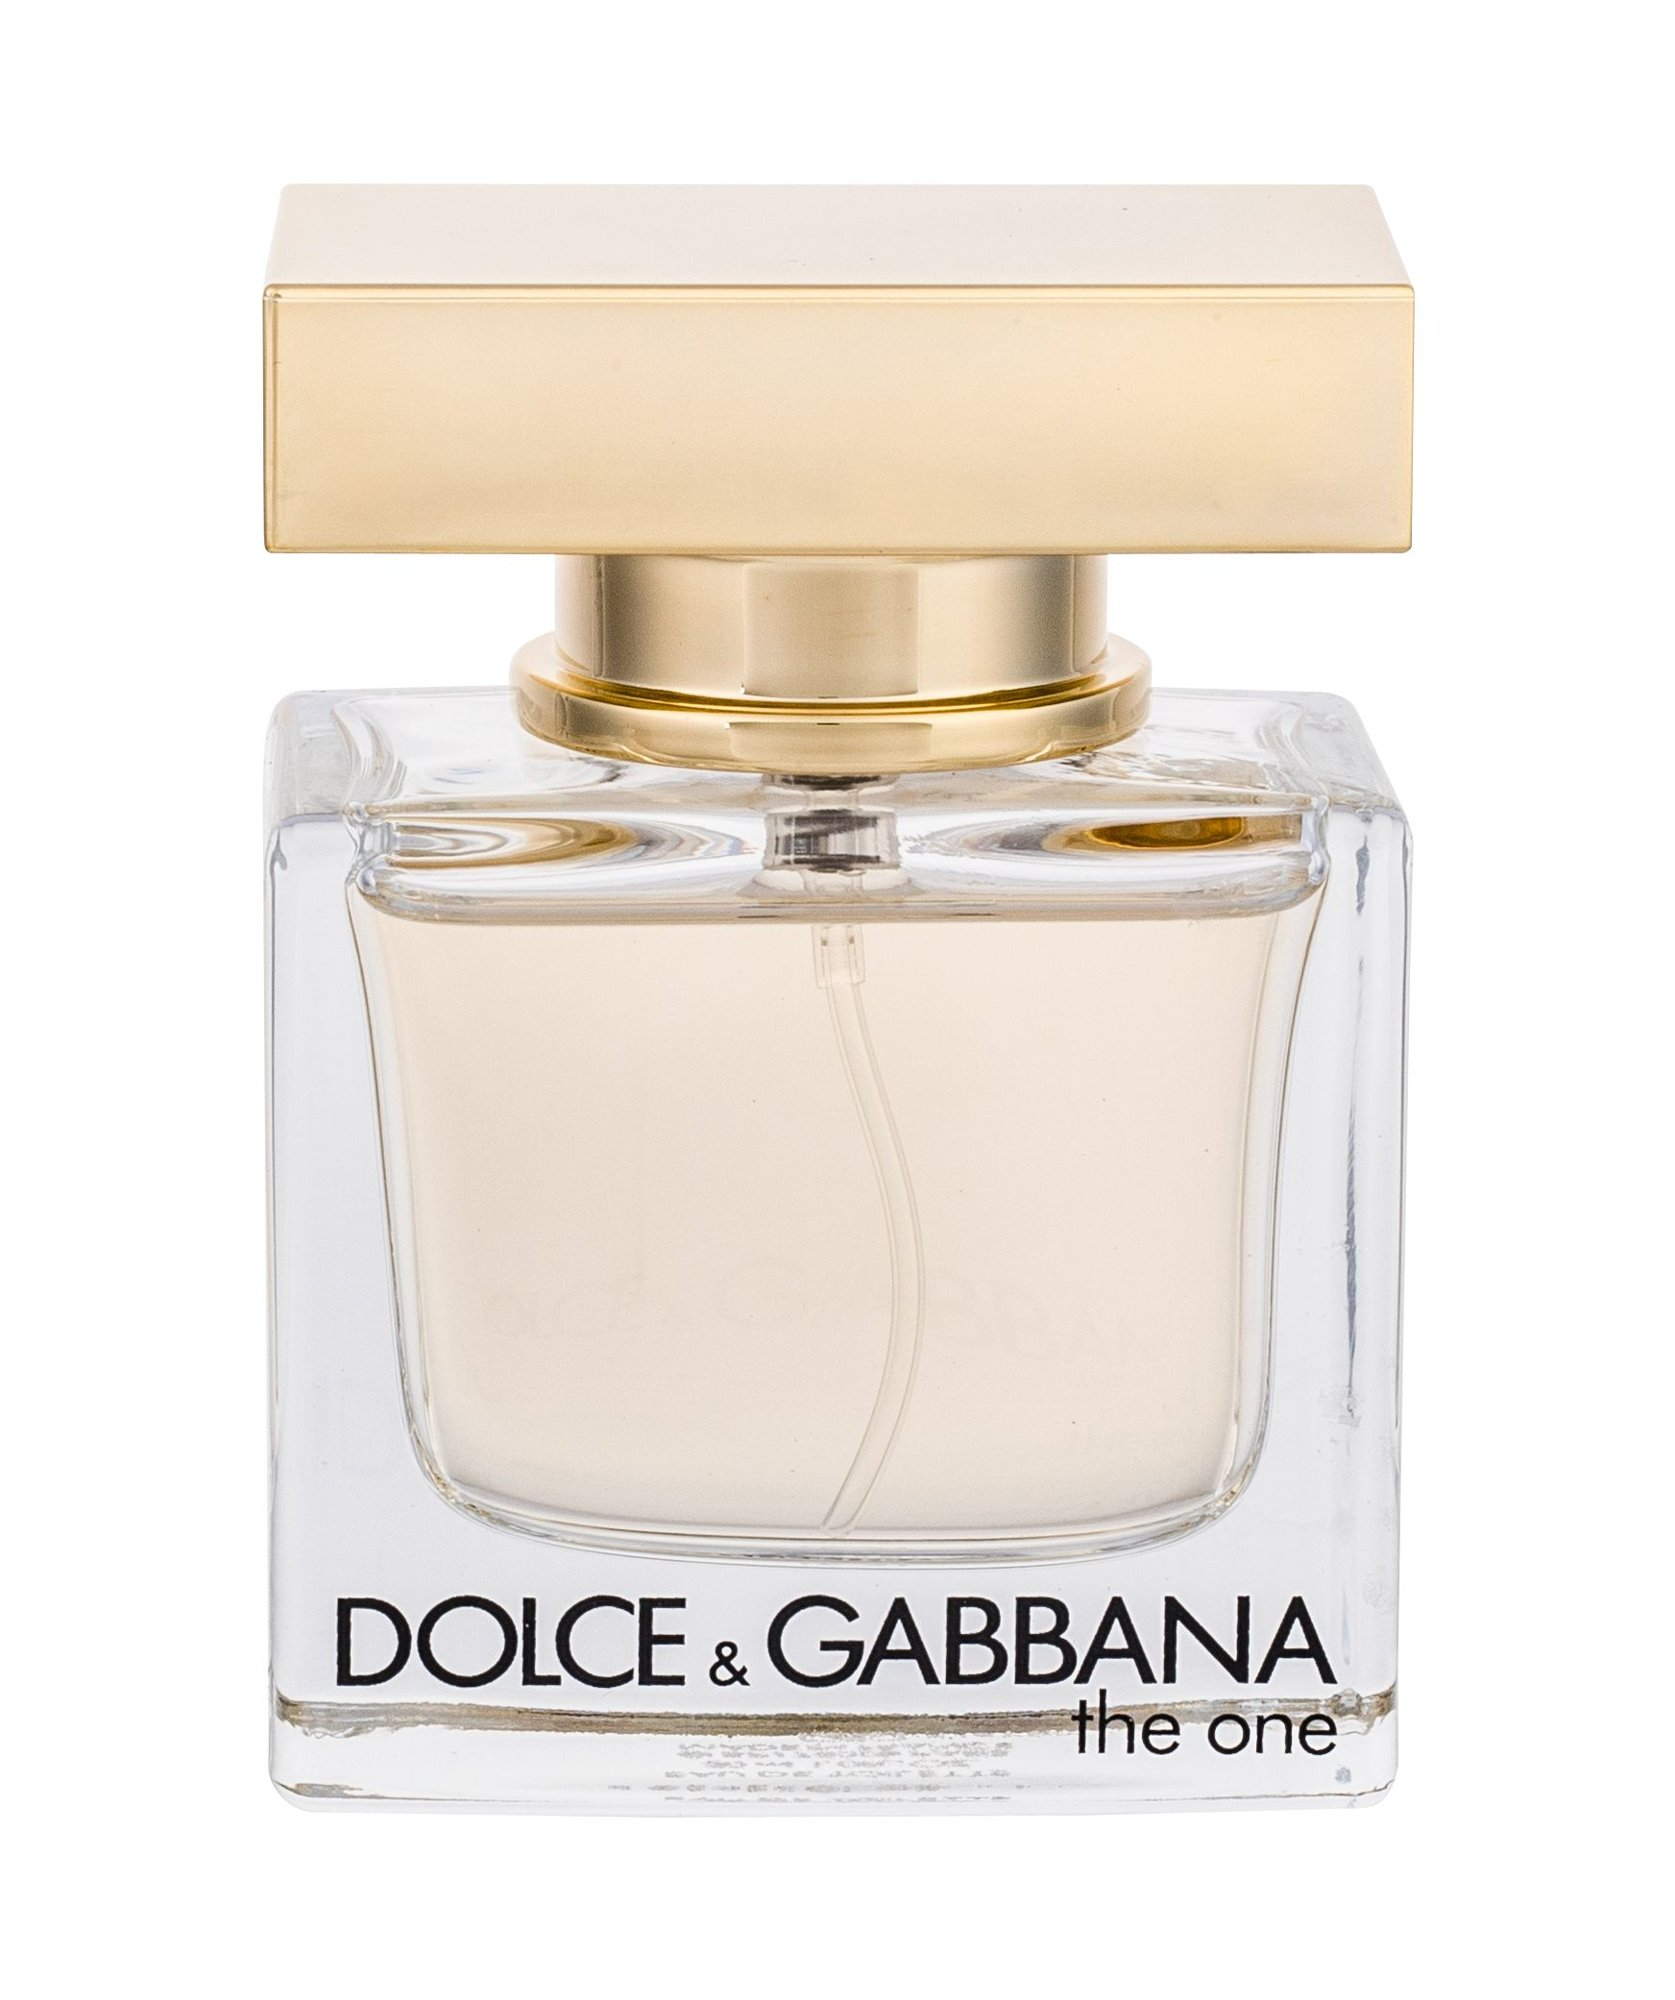 Dolce&Gabbana The One Eau de Toilette 30ml